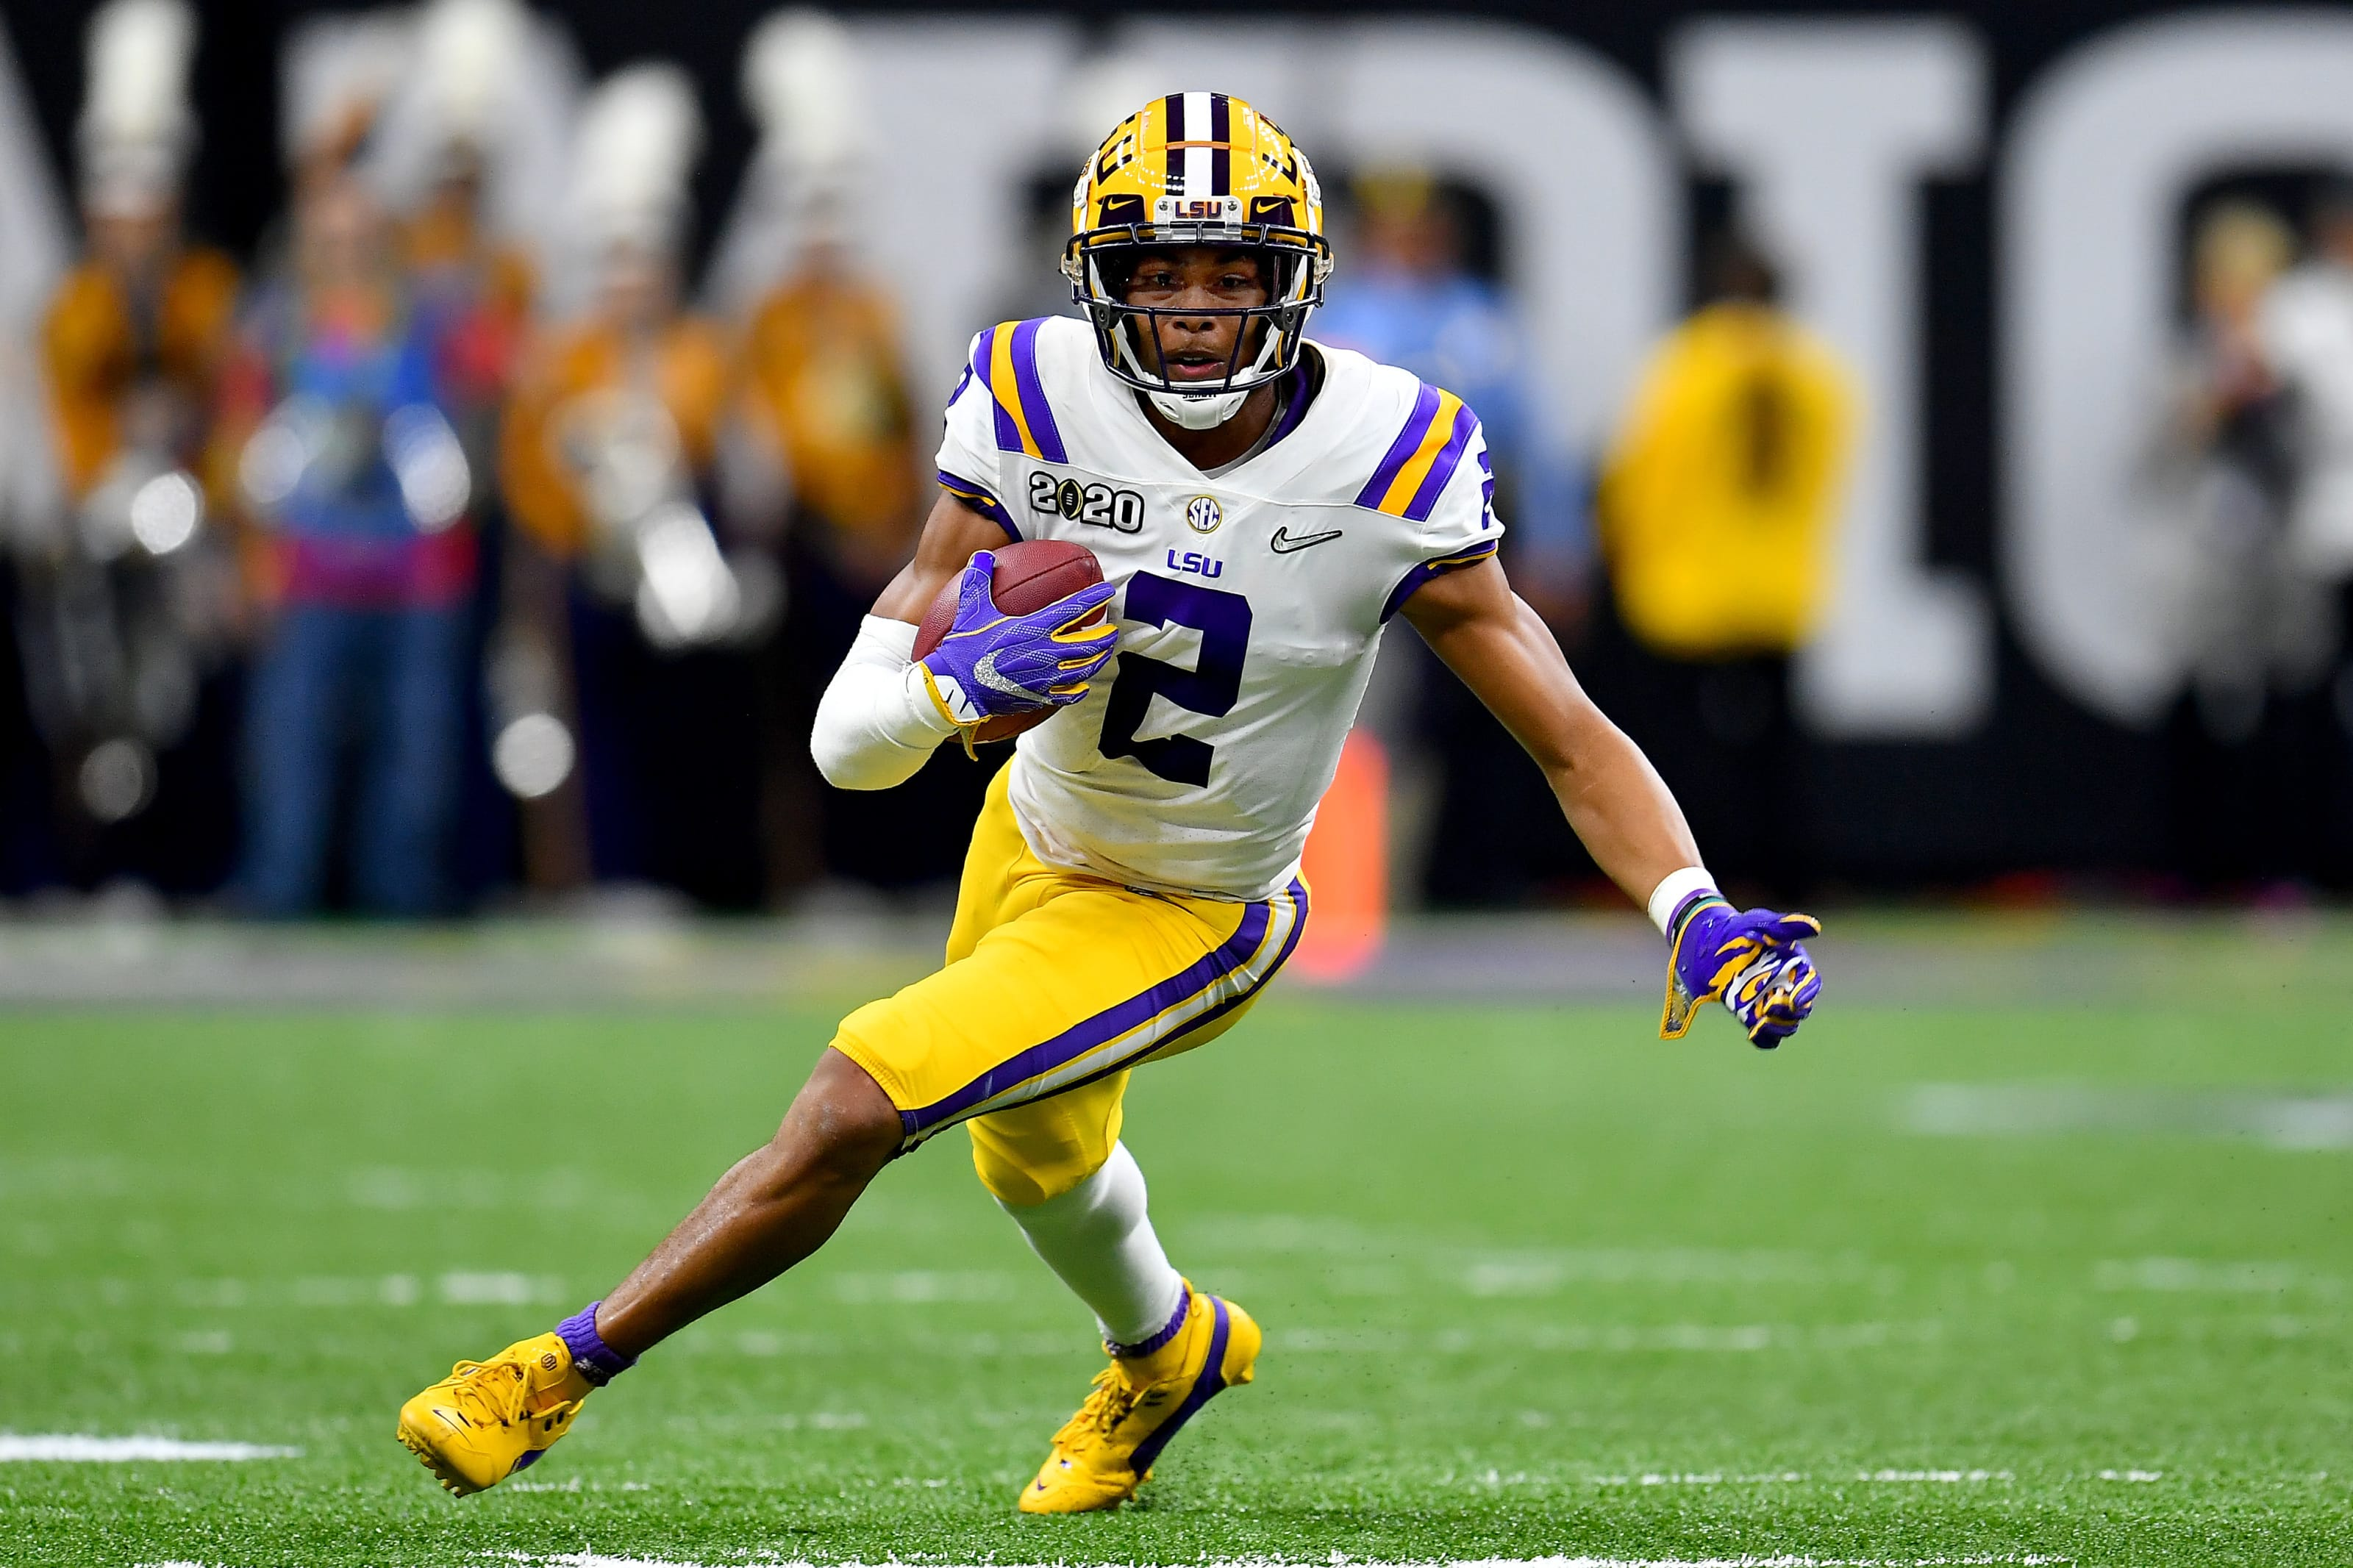 2020 NFL Draft: Three-round mock draft with player and pick trades